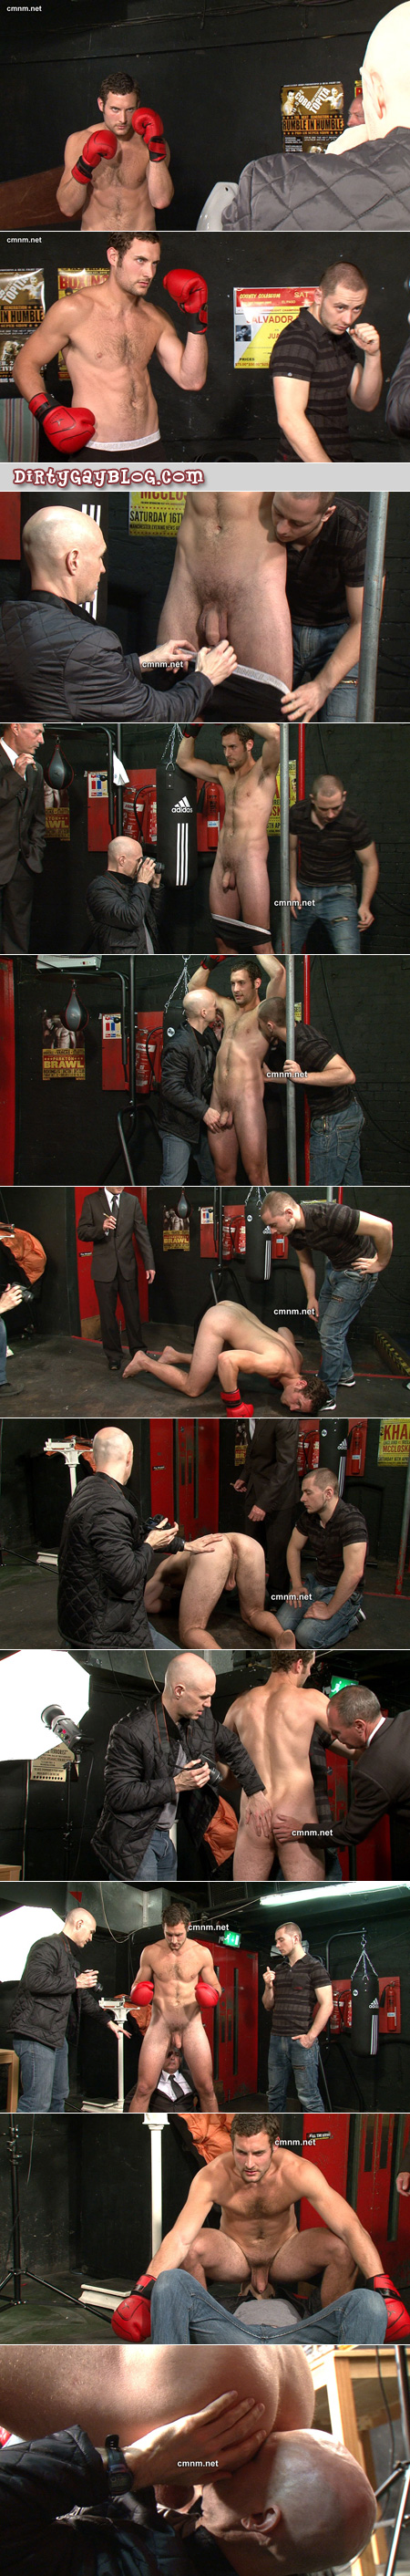 Straight male boxer stripped by three older men in suits.